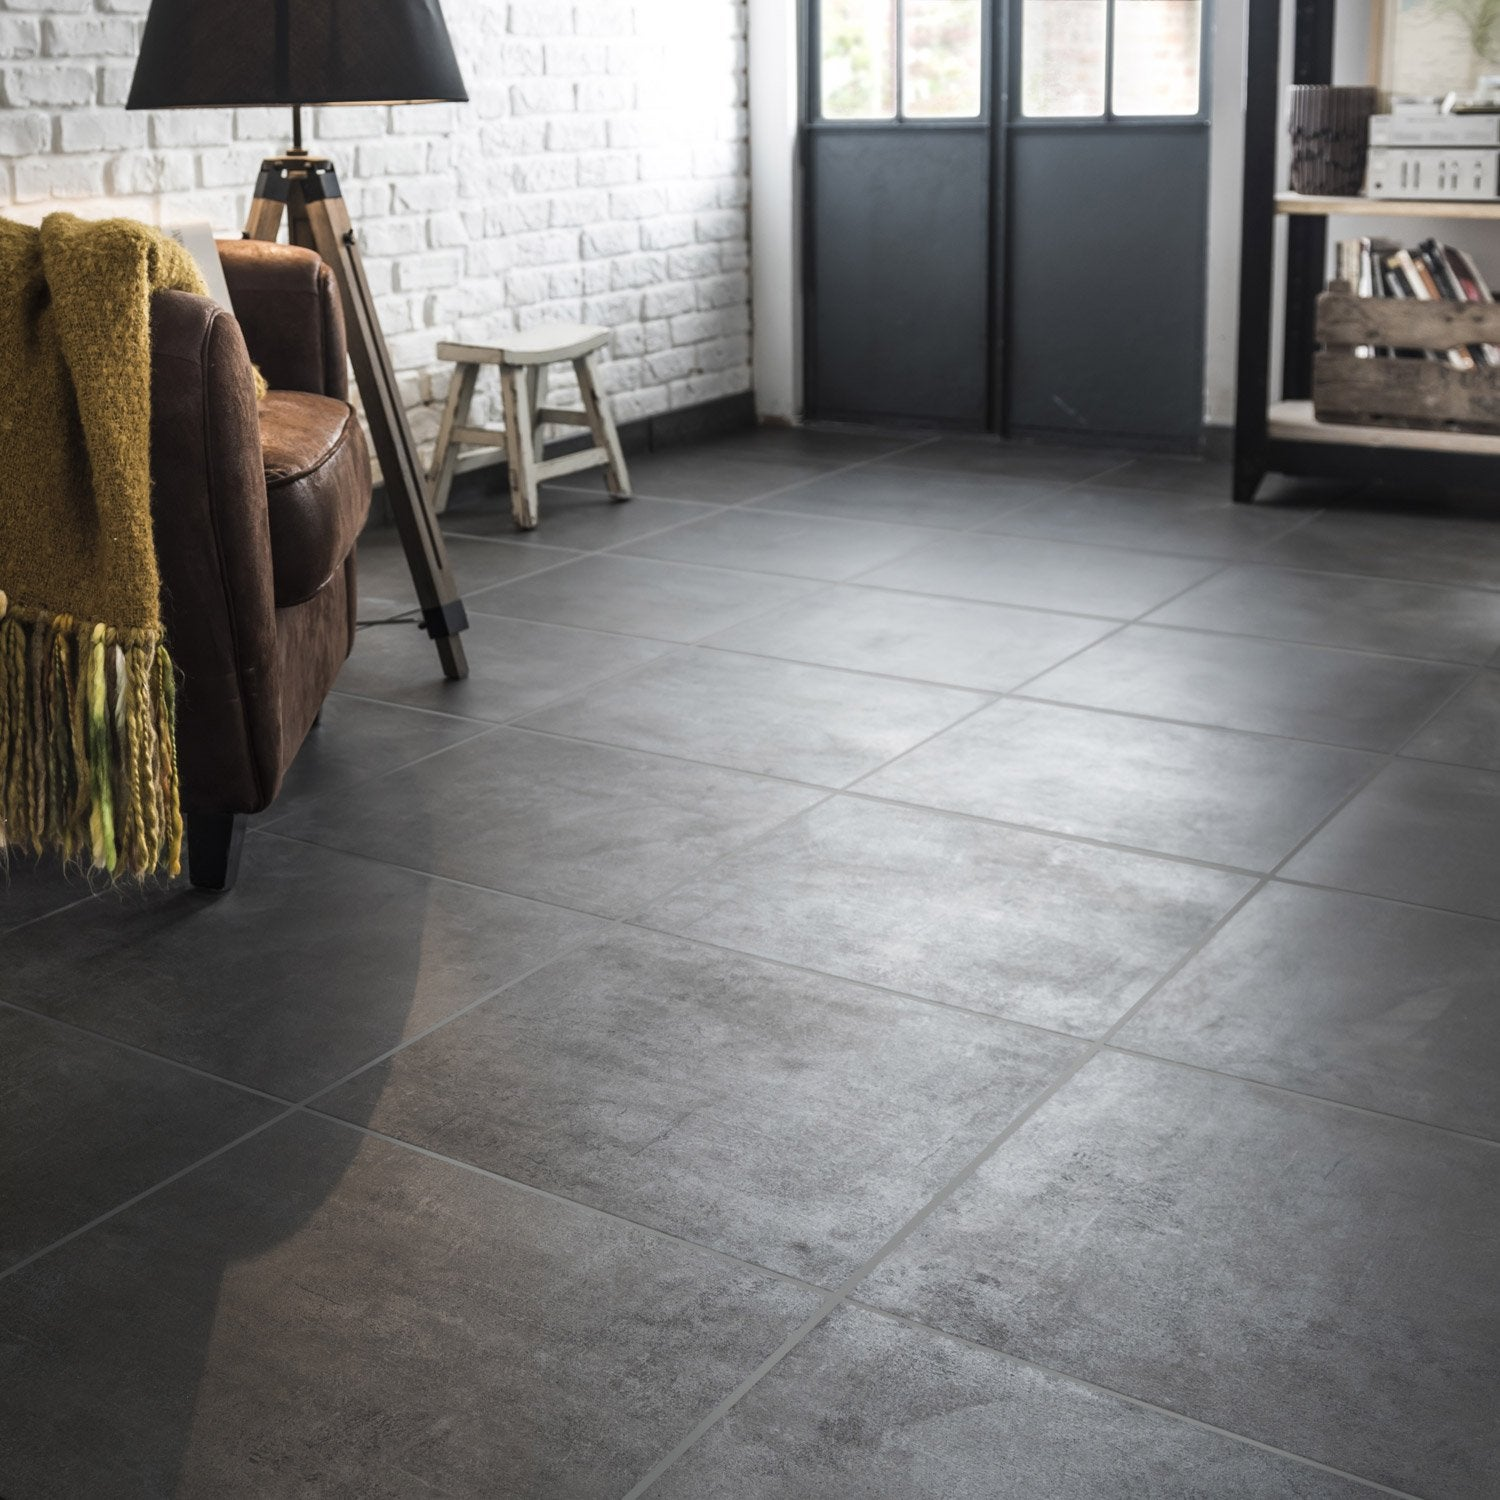 Carrelage sol anthracite effet b ton alma x cm for Carrelage interieur gris anthracite